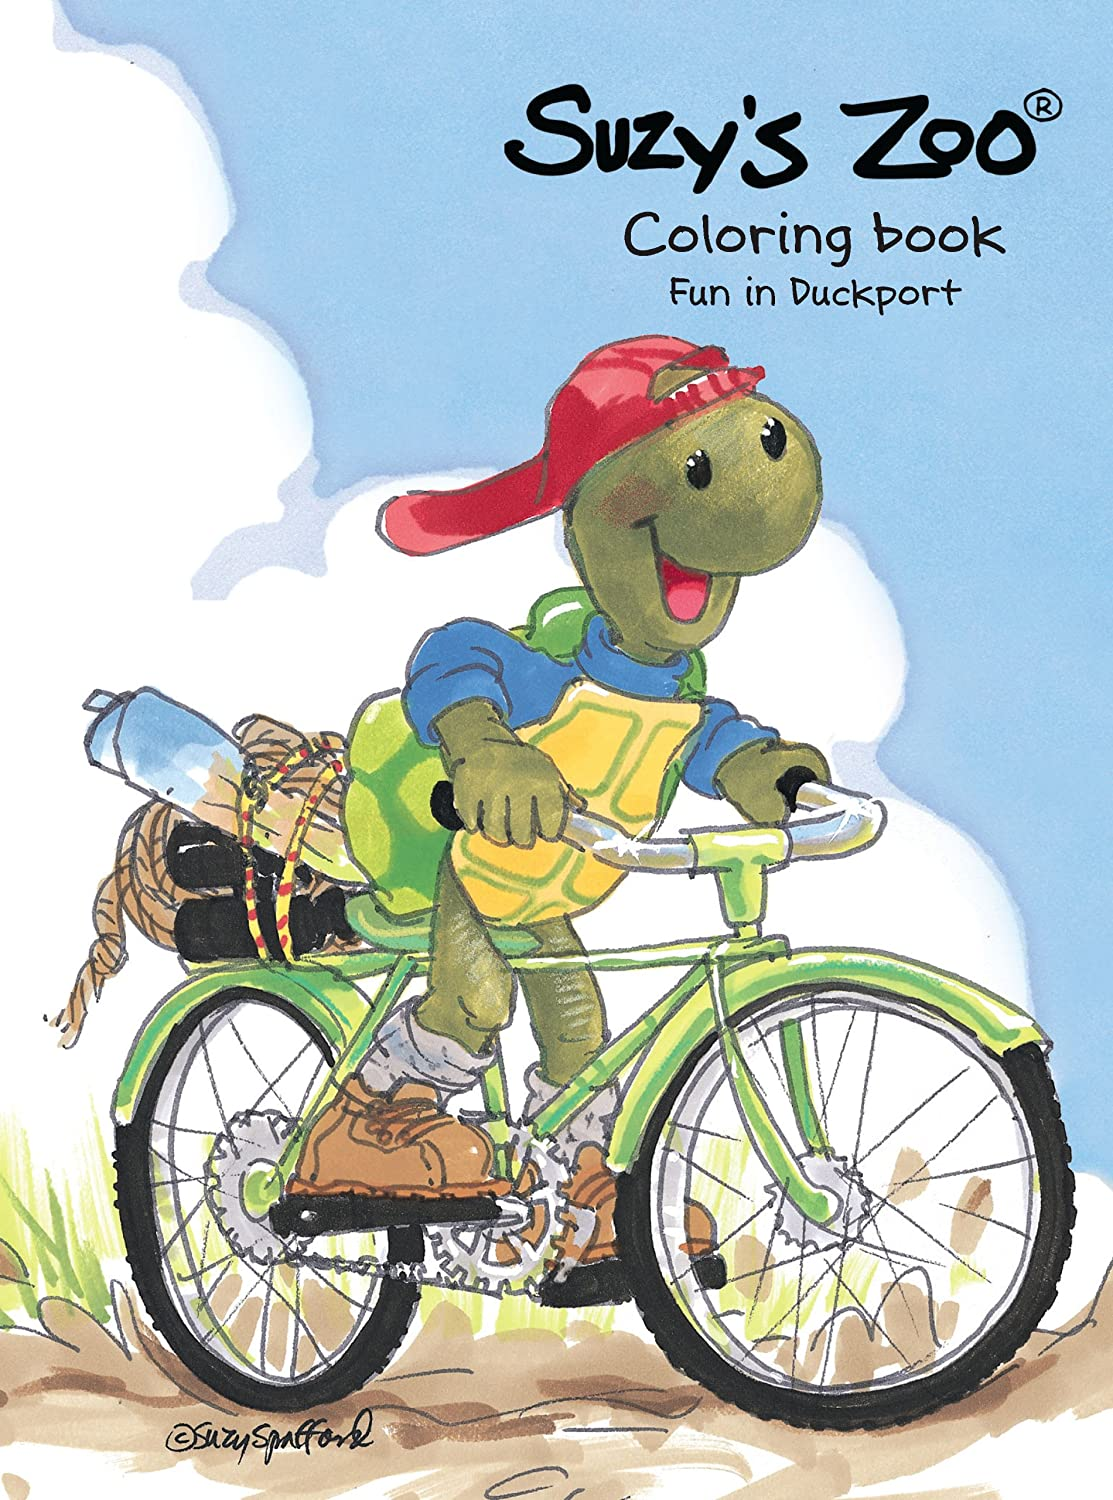 Suzy's Zoo Fun in Duckport Coloring Book